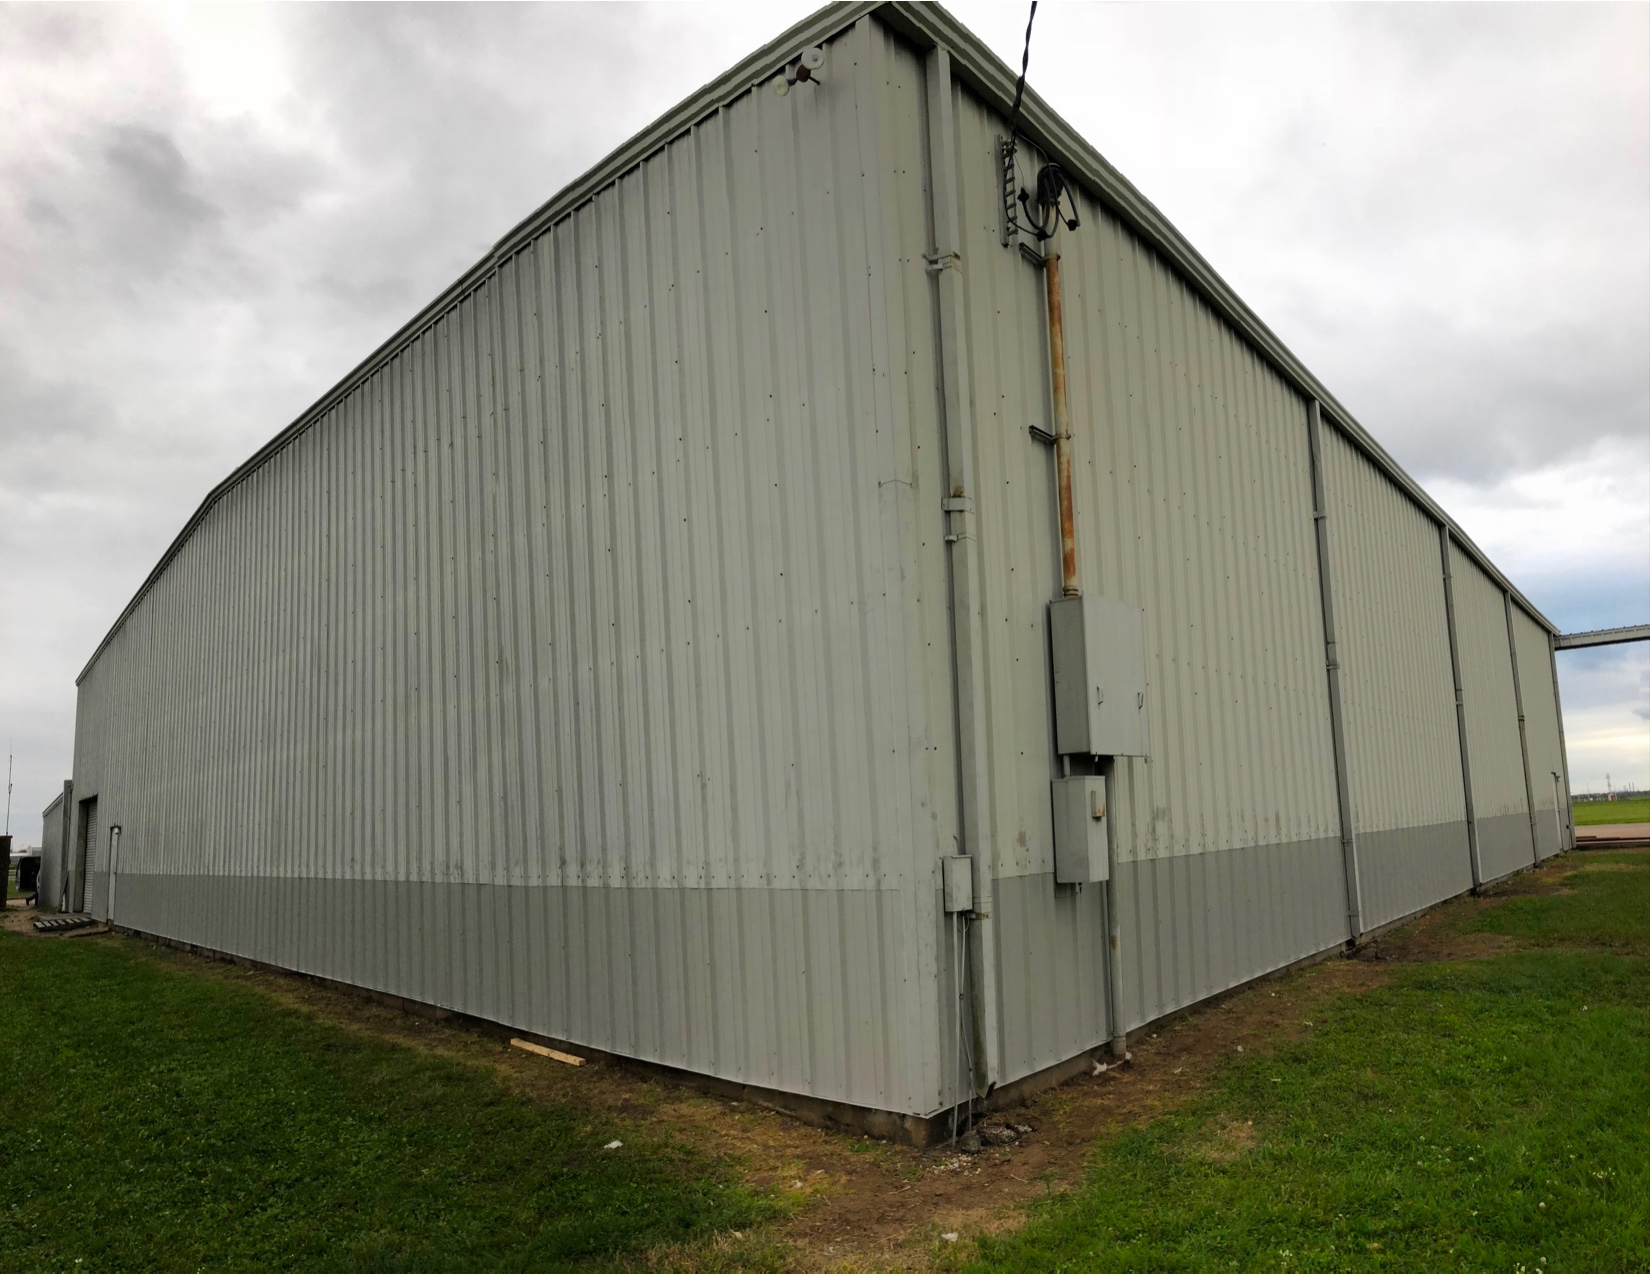 The bottom of the metal building wall panel was rusted out and pushed out in places on this airport hangar. The bottom 4' of metal wall panel, base angle and insulation were replaced. The panels are the same color, the old top panels are just dirty. This was much affordable than replacing the entire panel.